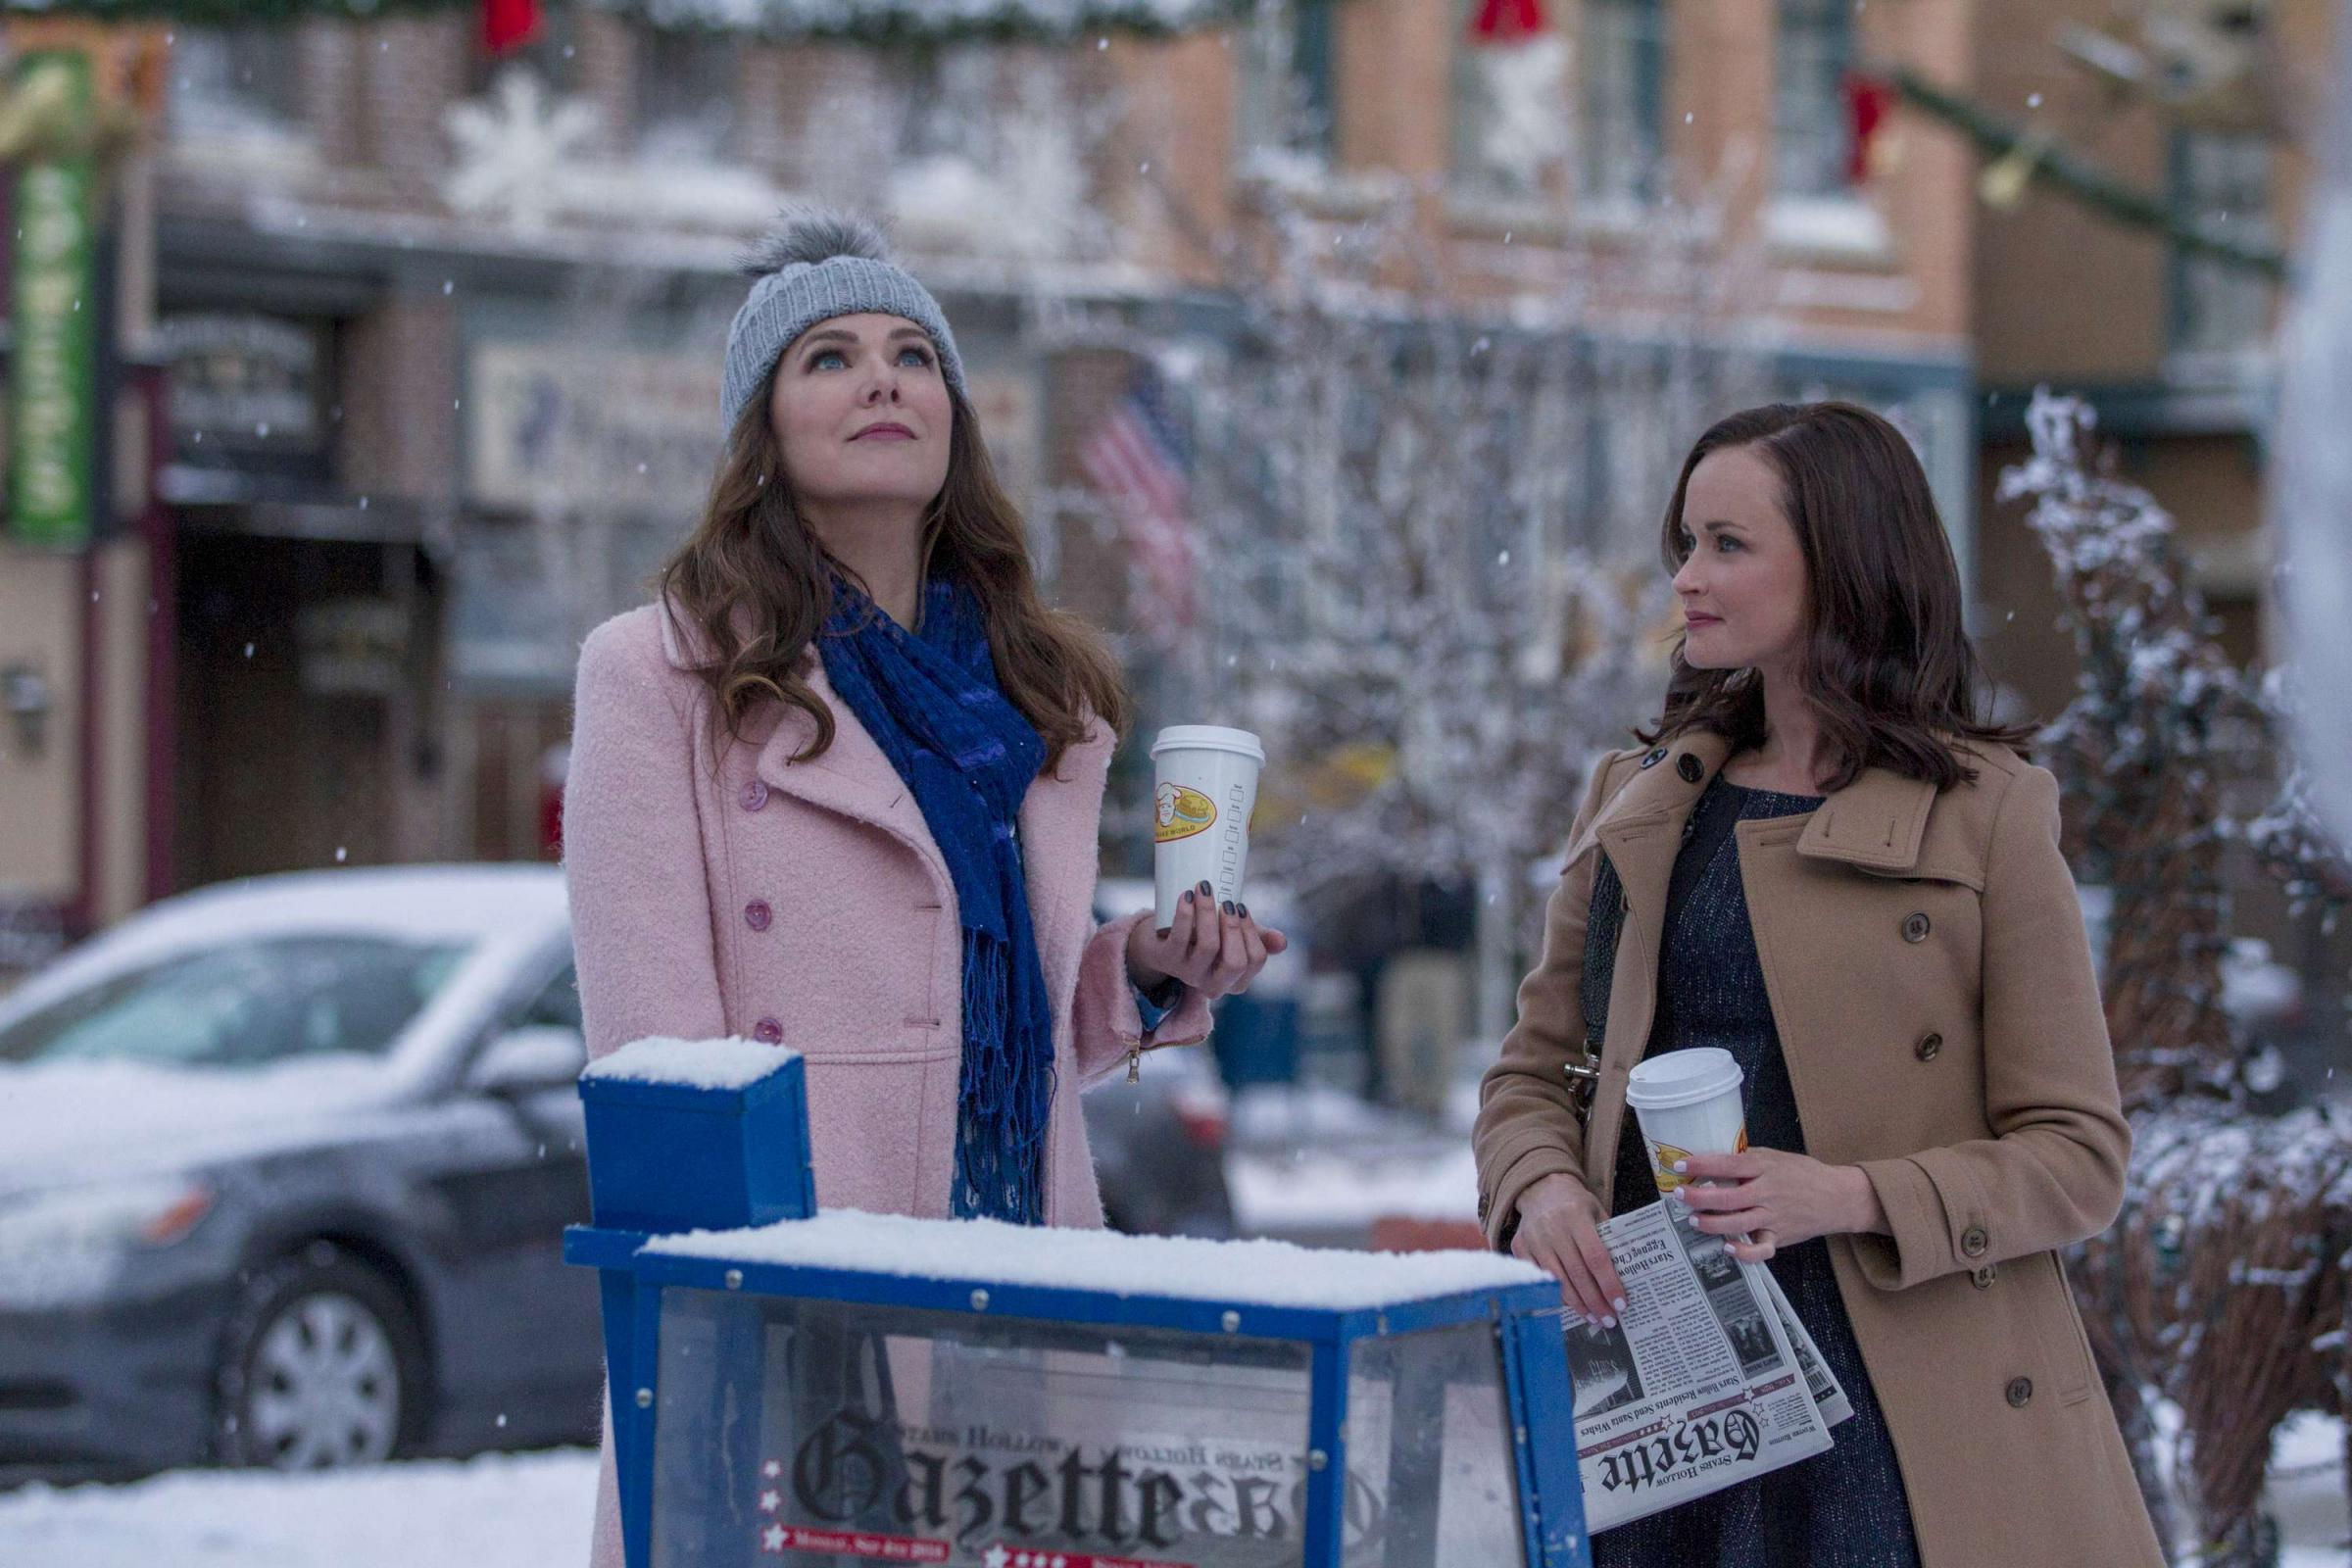 Here is the First Full 'Gilmore Girls' Trailer - And it Looks Promising!